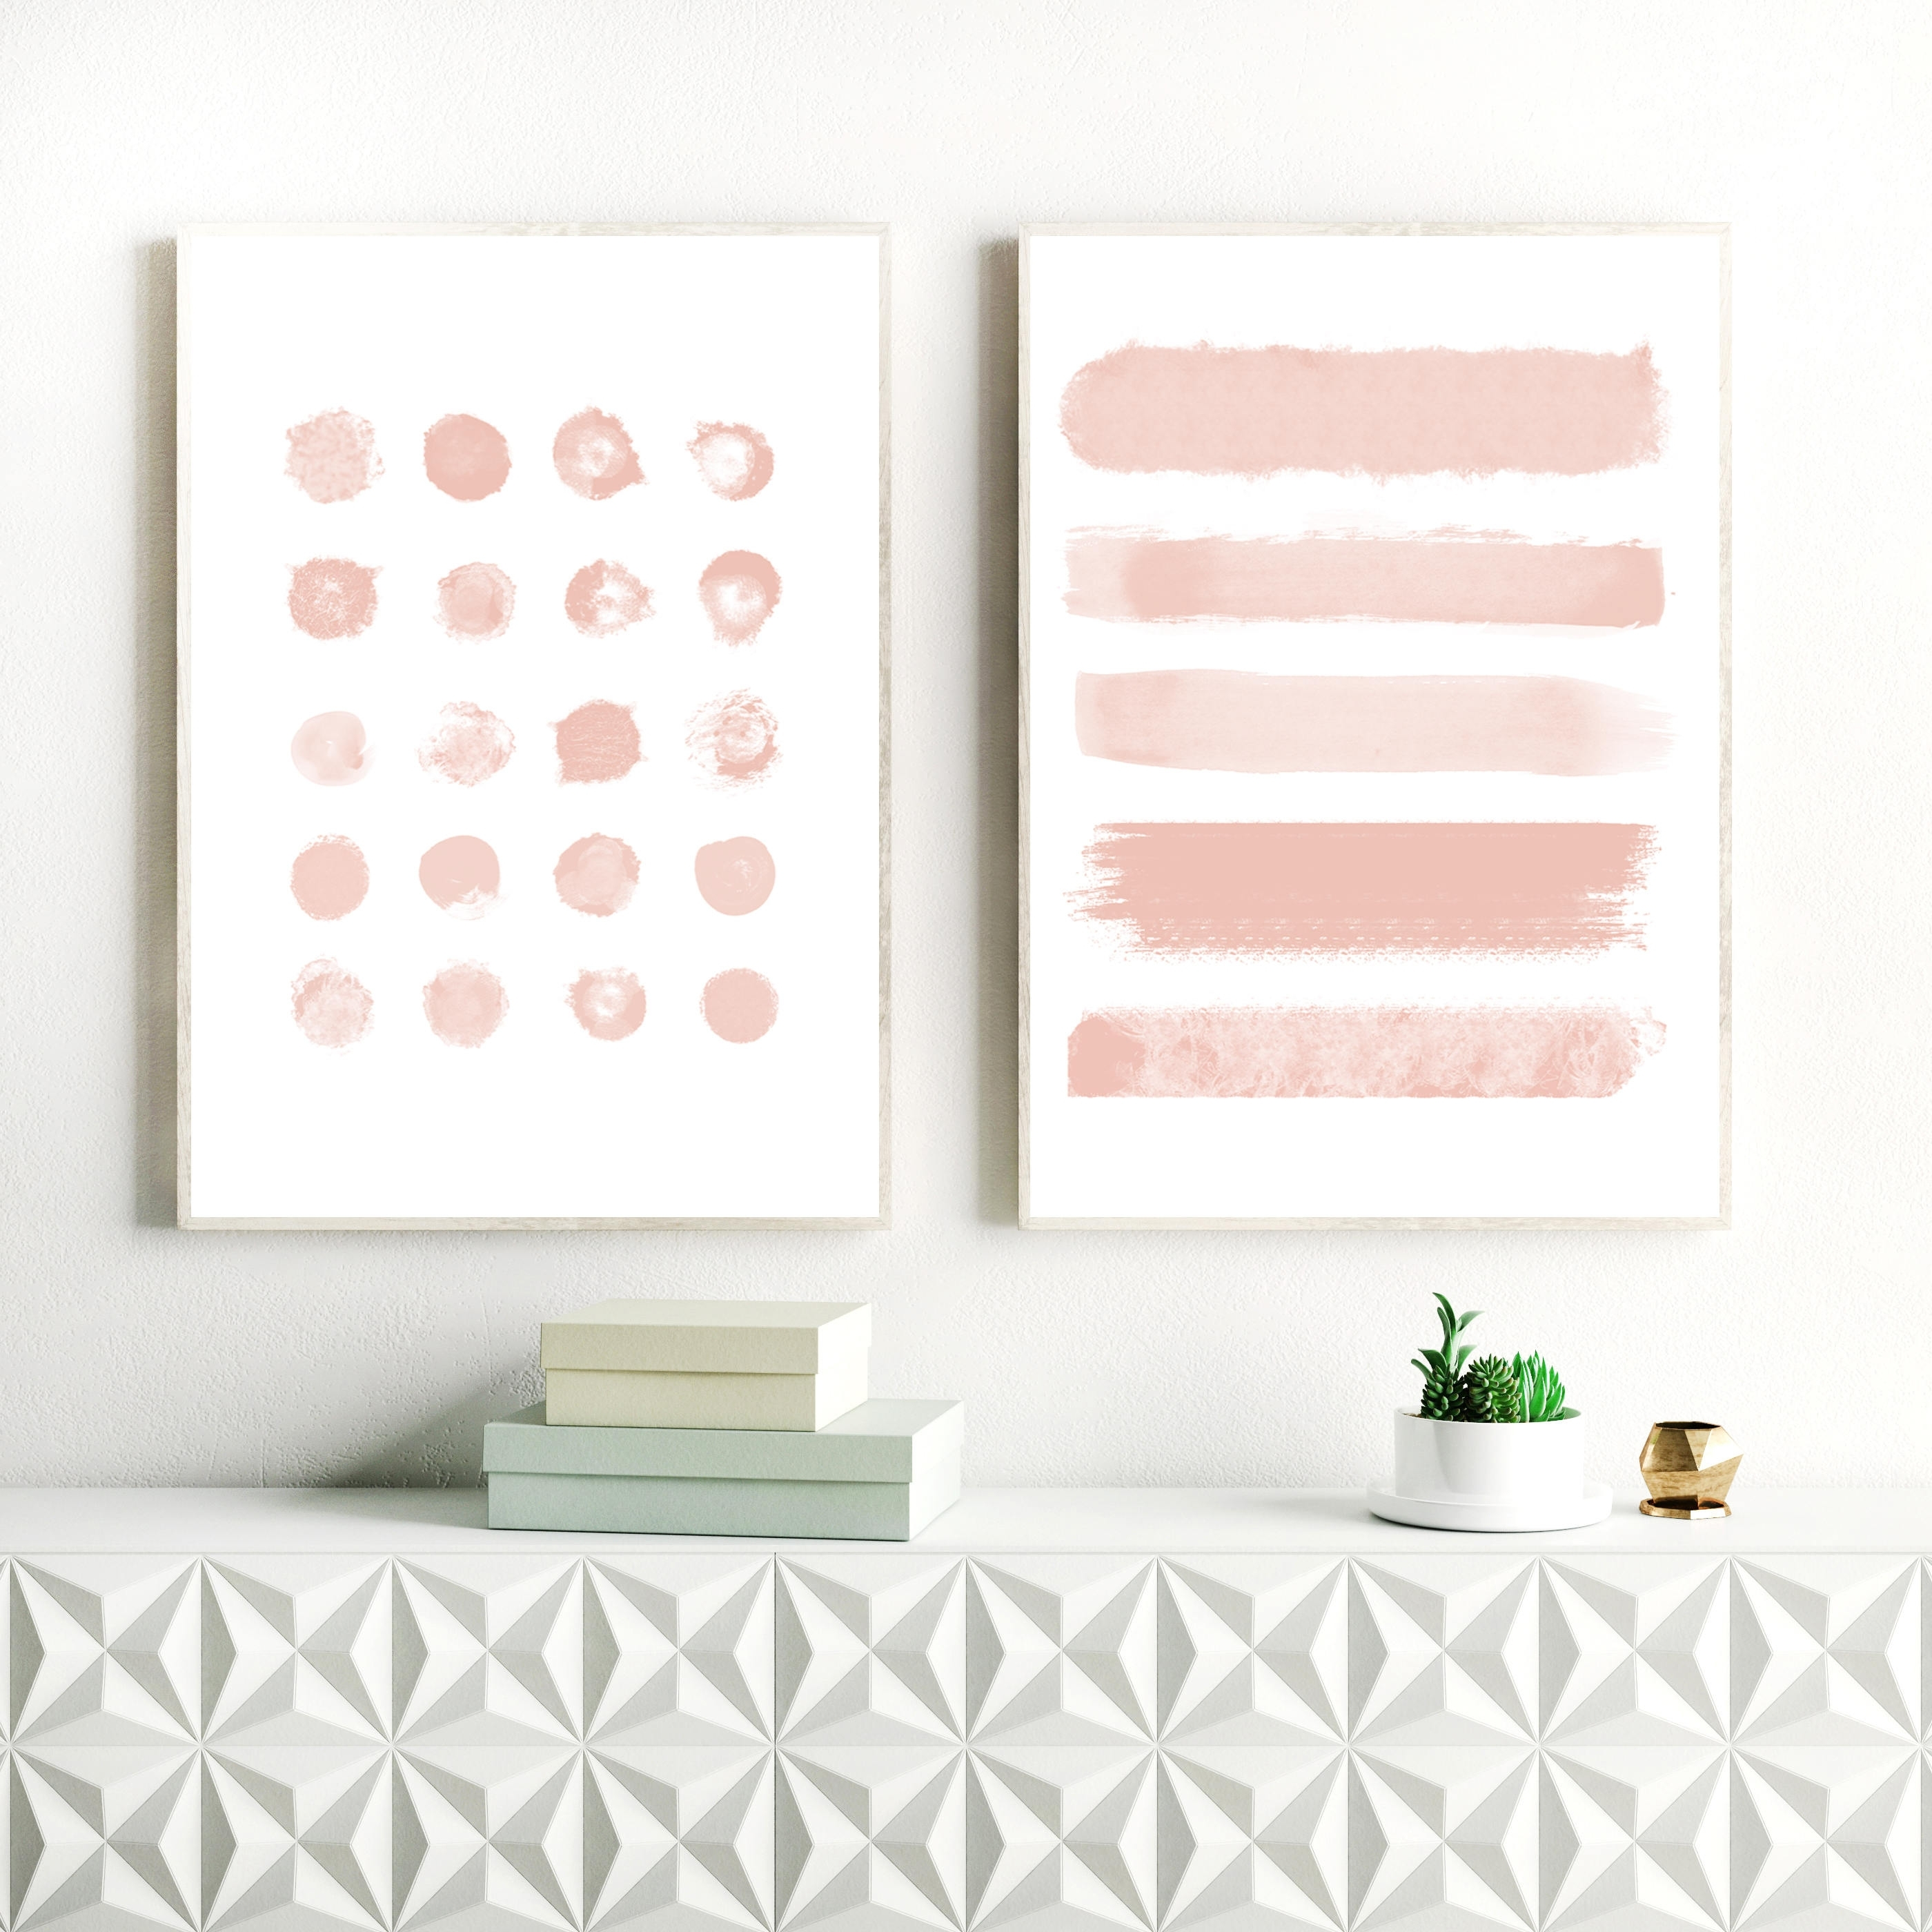 Blush Pink Abstract Art, Brushstrokes, Ink Blot Painting, Nursery Throughout Most Popular Pink Abstract Wall Art (View 5 of 15)